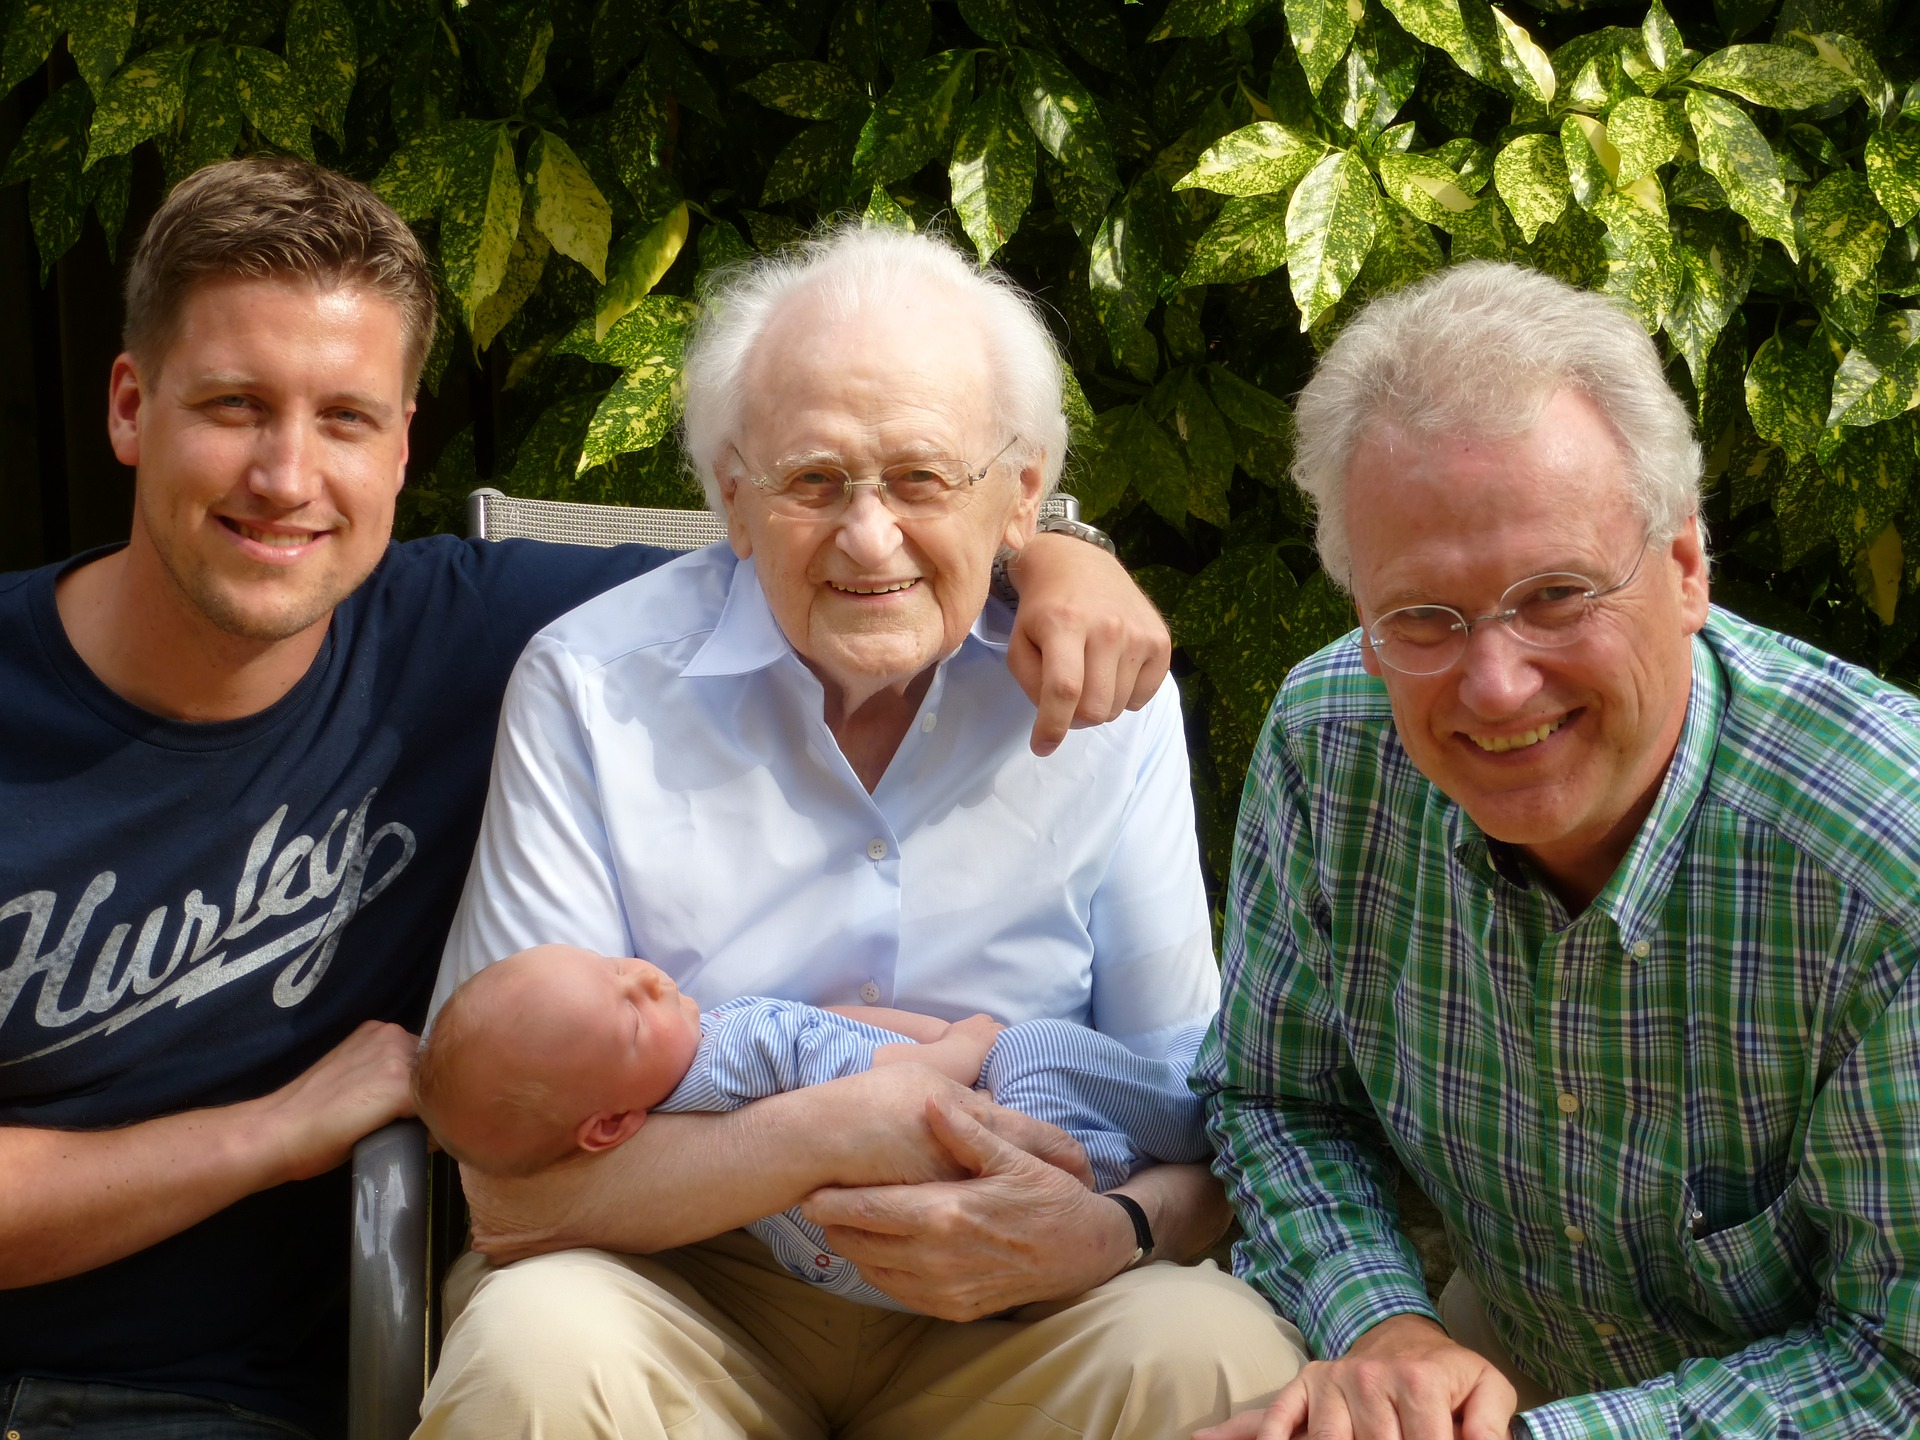 Photo of four generations of men, oldest man holding baby